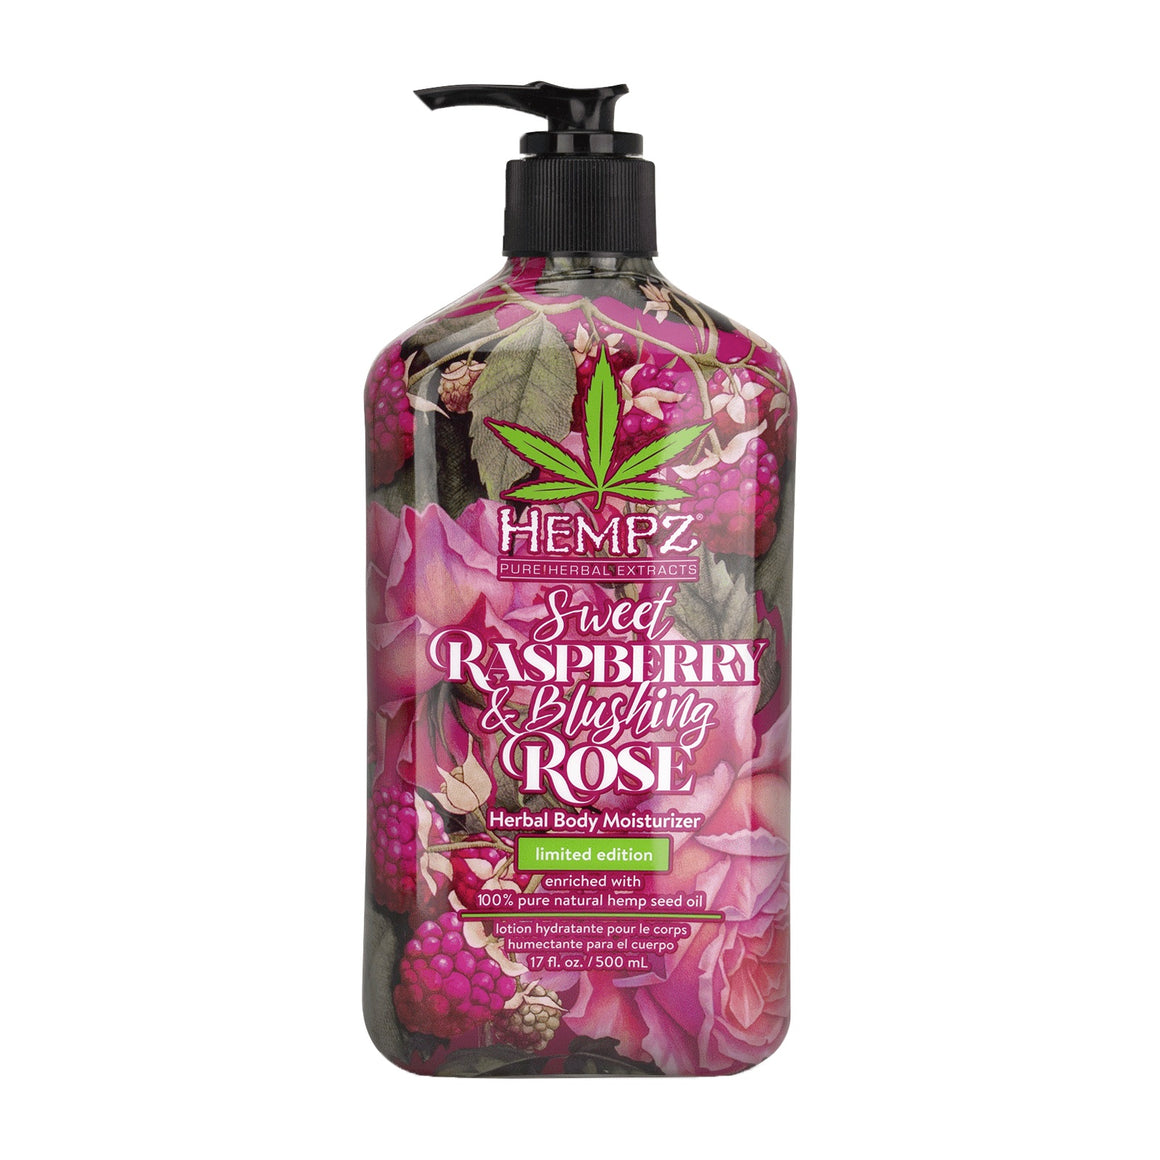 Hempz Sweet Raspberry & Blushing Rose Body Moisturizer